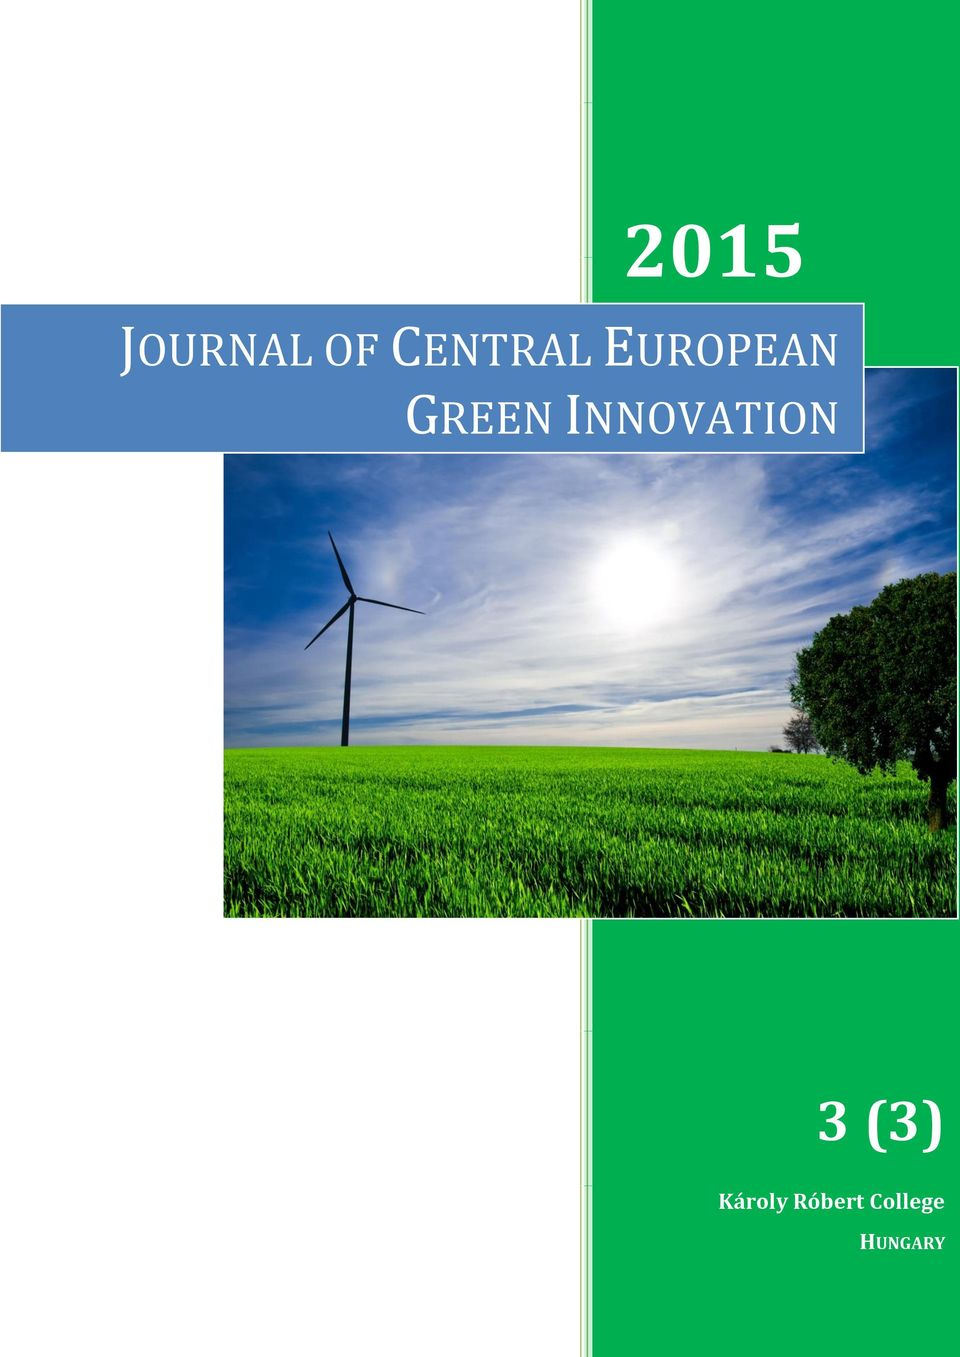 GREEN INNOVATION 3